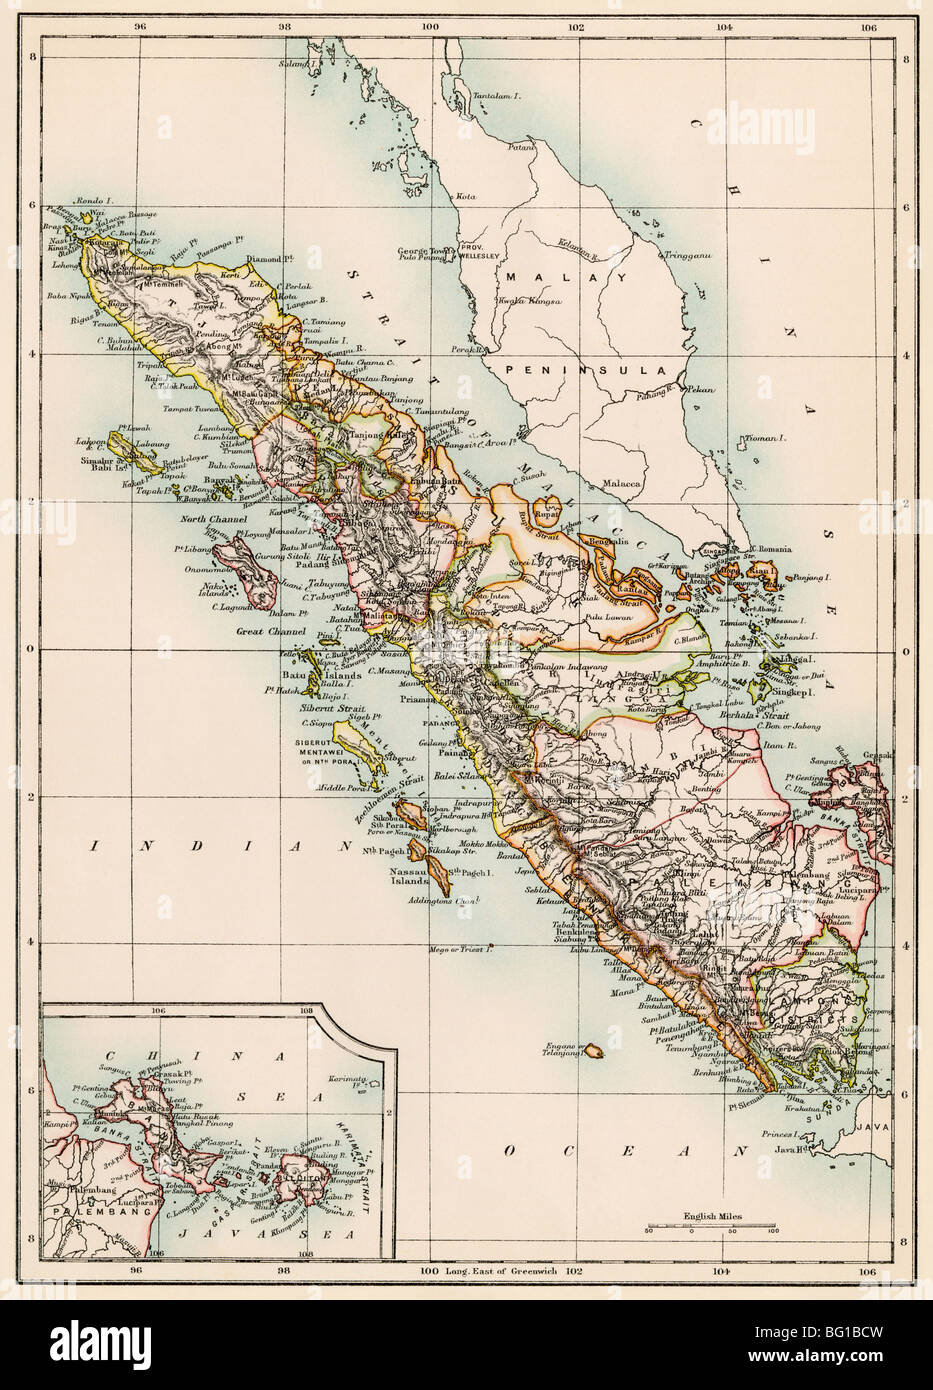 Map of Sumatra, 1870s. Color lithograph - Stock Image